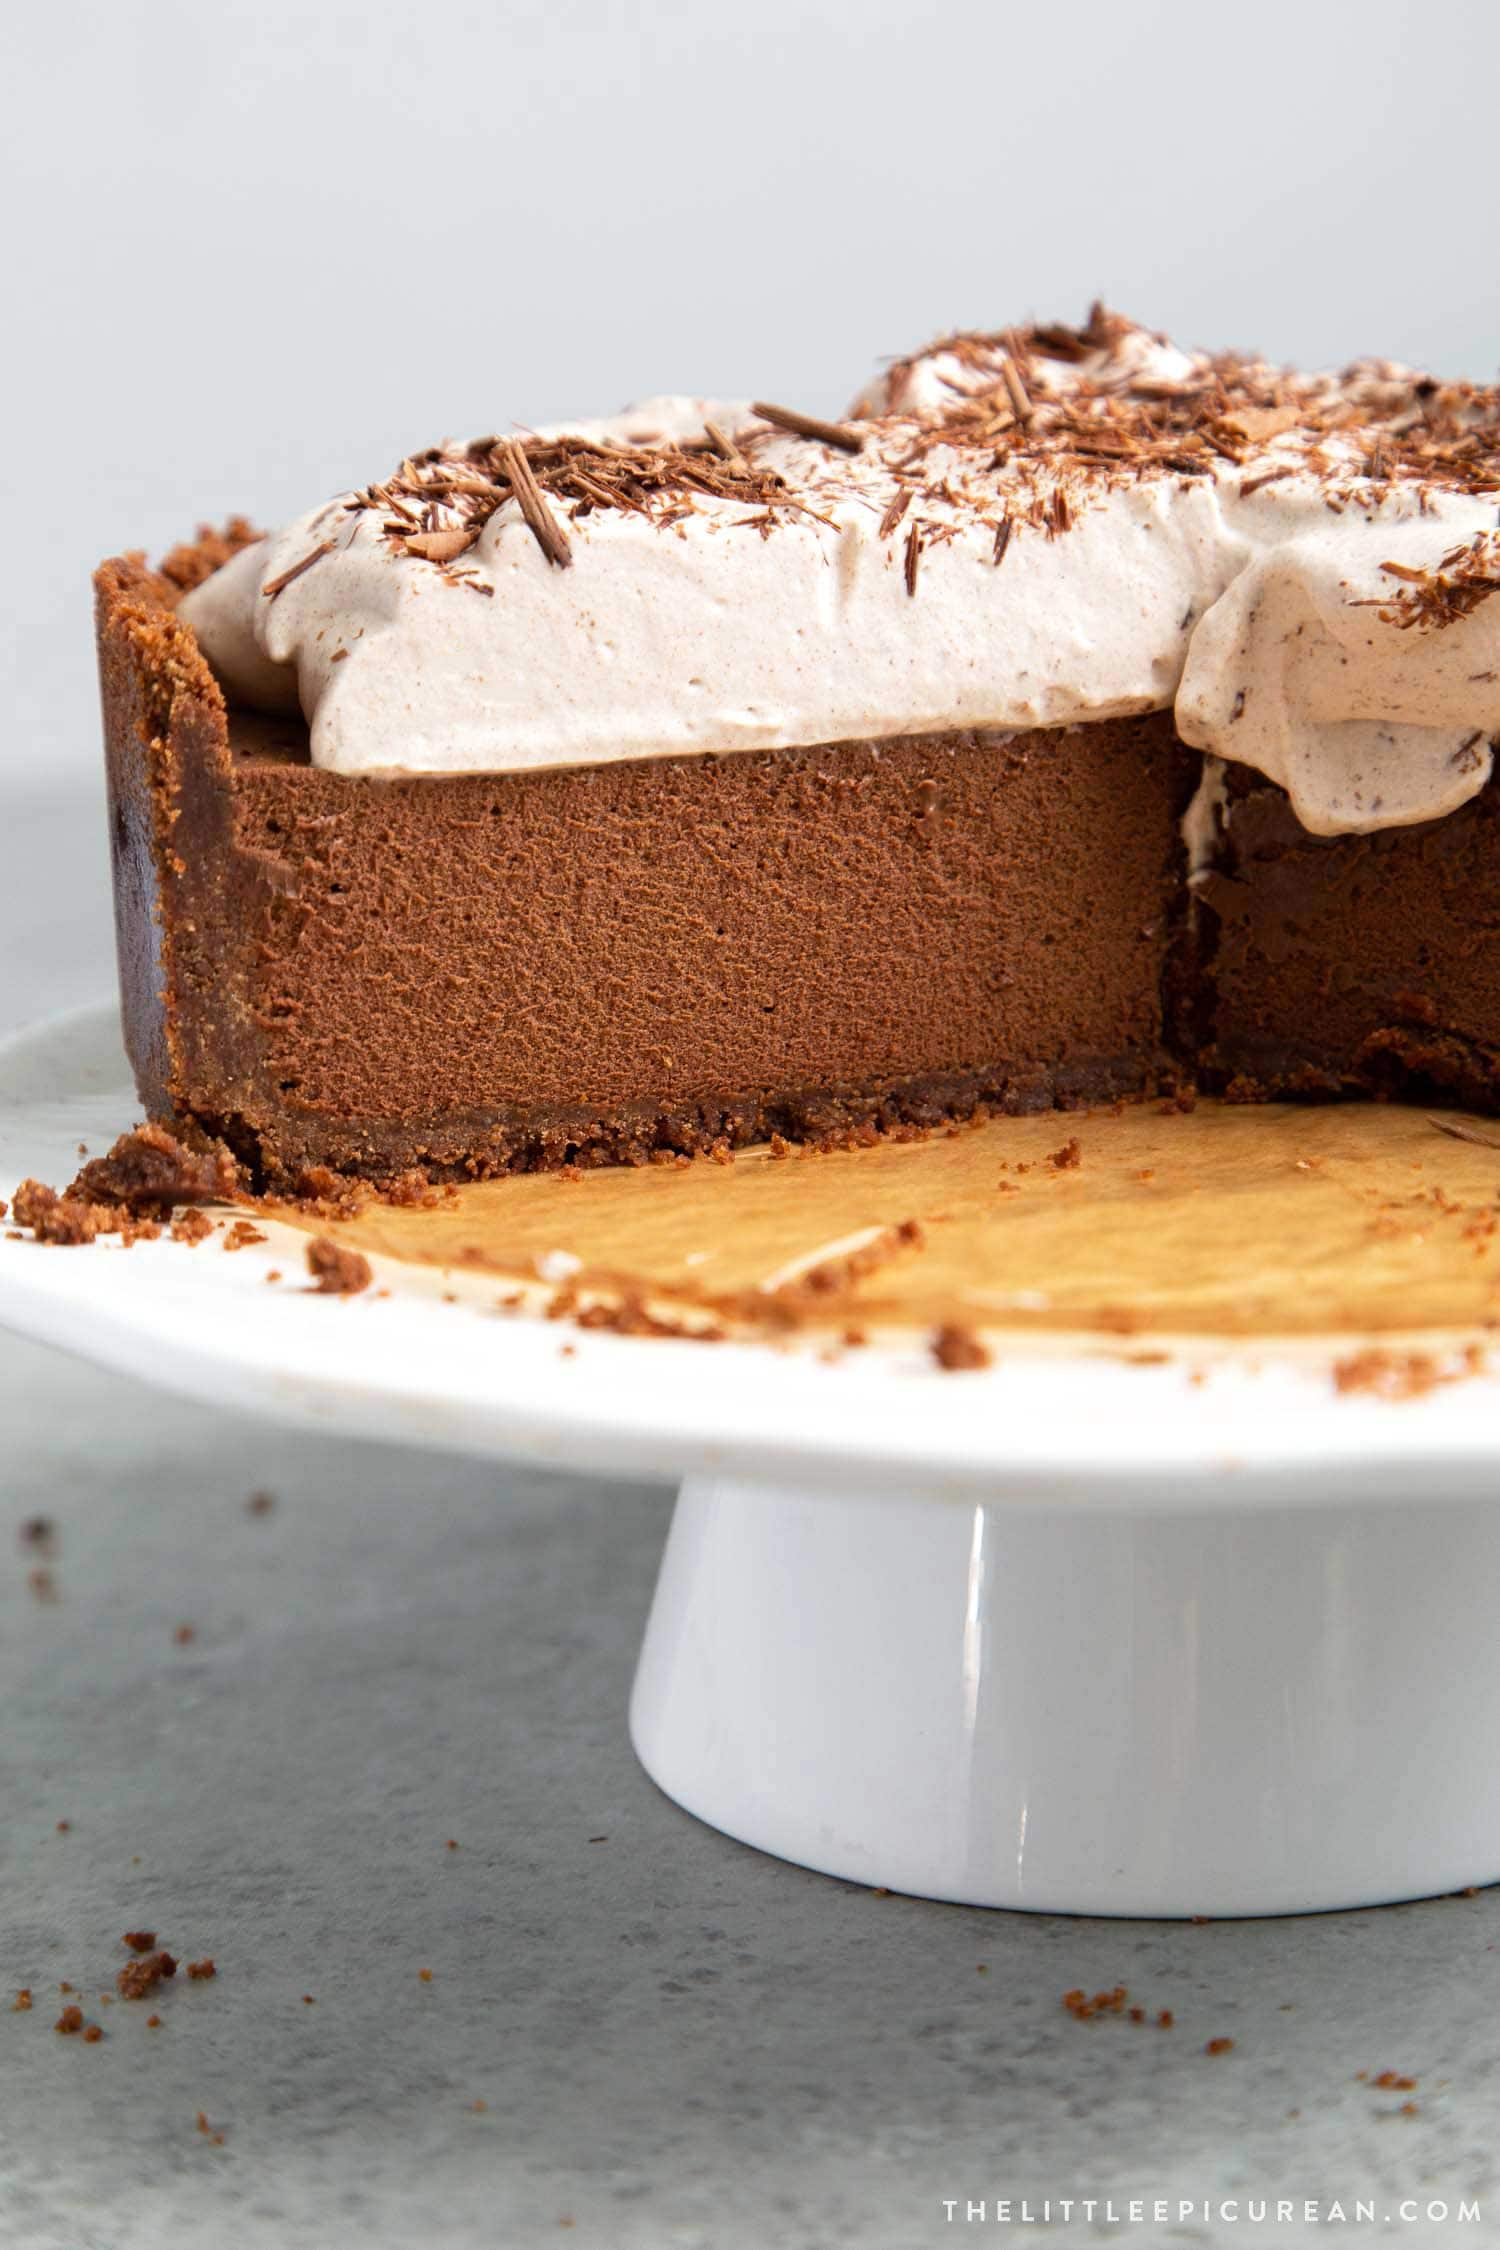 Chocolate Mousse Pie. Chocolate graham cracker crust filled with chocolate mousse and topped with whipped cream and chocolate shavings.